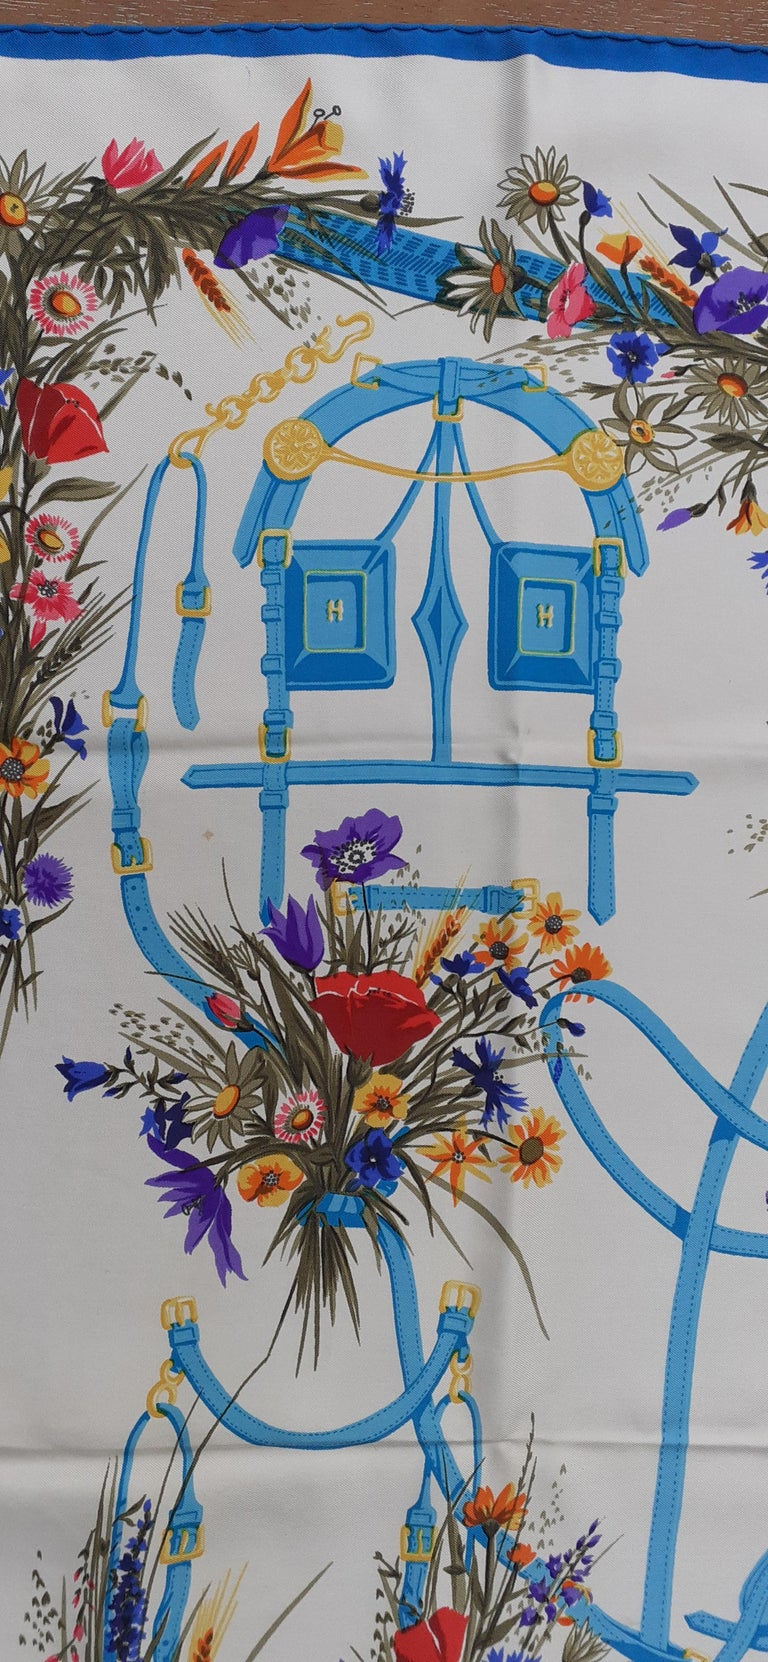 Hermès Vintage Silk Scarf Herbes Folles Lise Coutin White Blue 35 inches For Sale 3